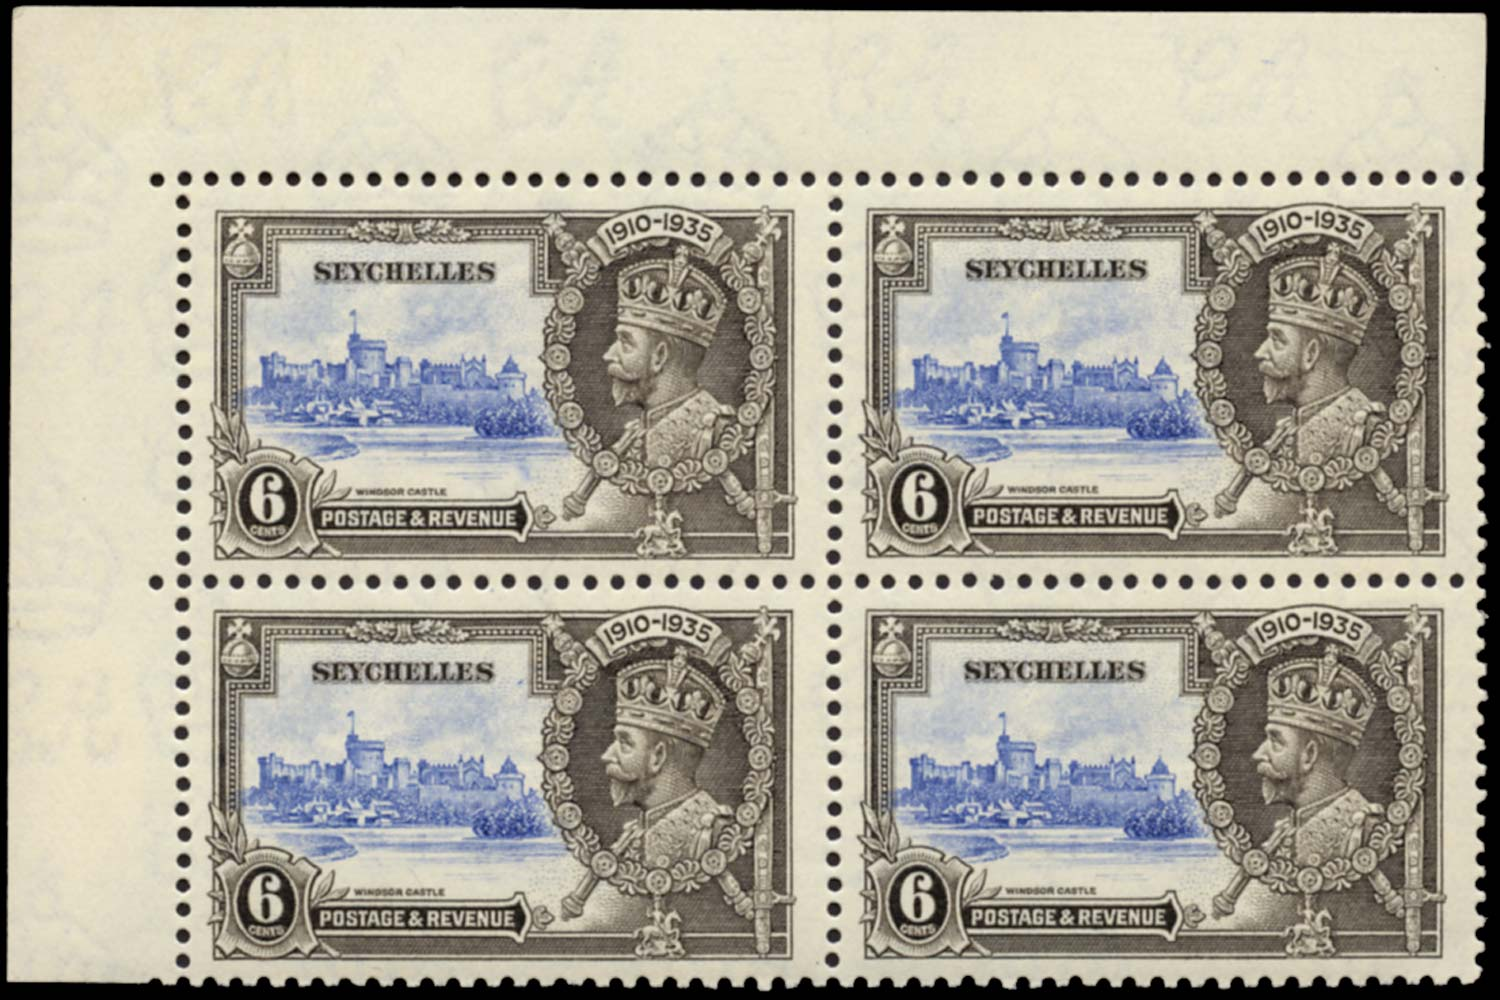 SEYCHELLES 1935  SG128b Mint Silver Jubilee 6c Short Extra Flagstaff unmounted